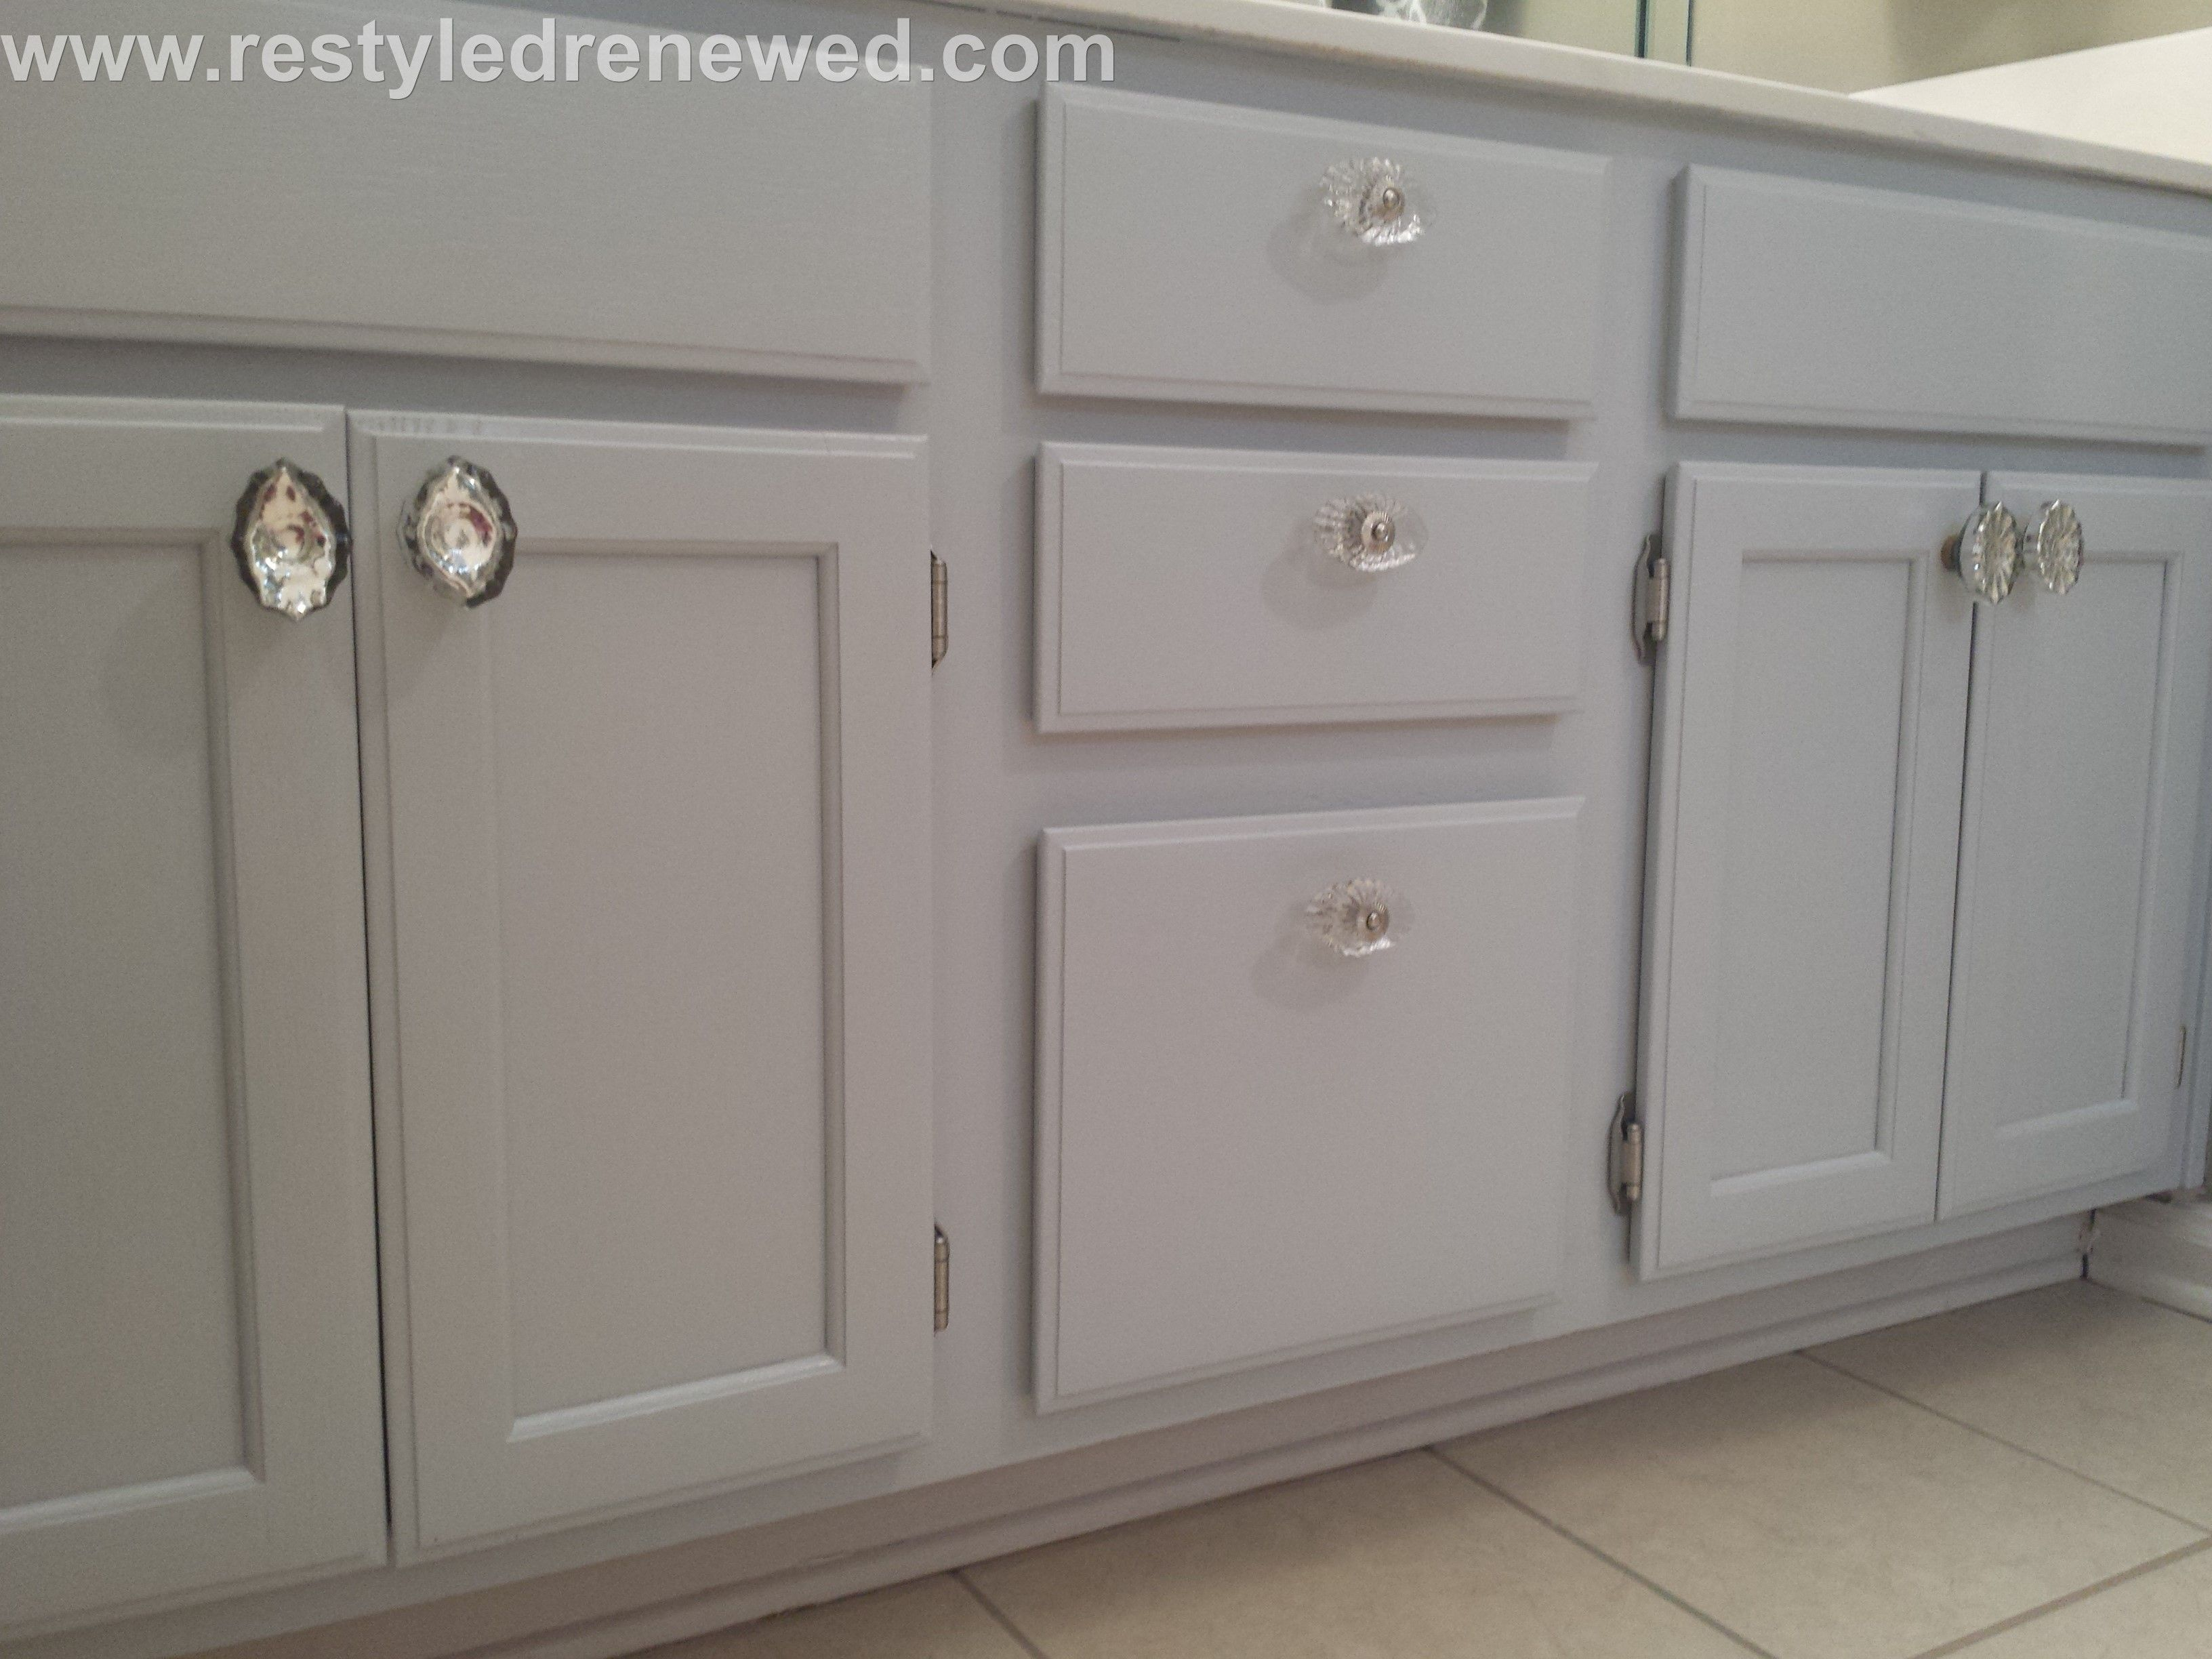 Benjamin Moore Advance paint in Silver Lining Mercury and